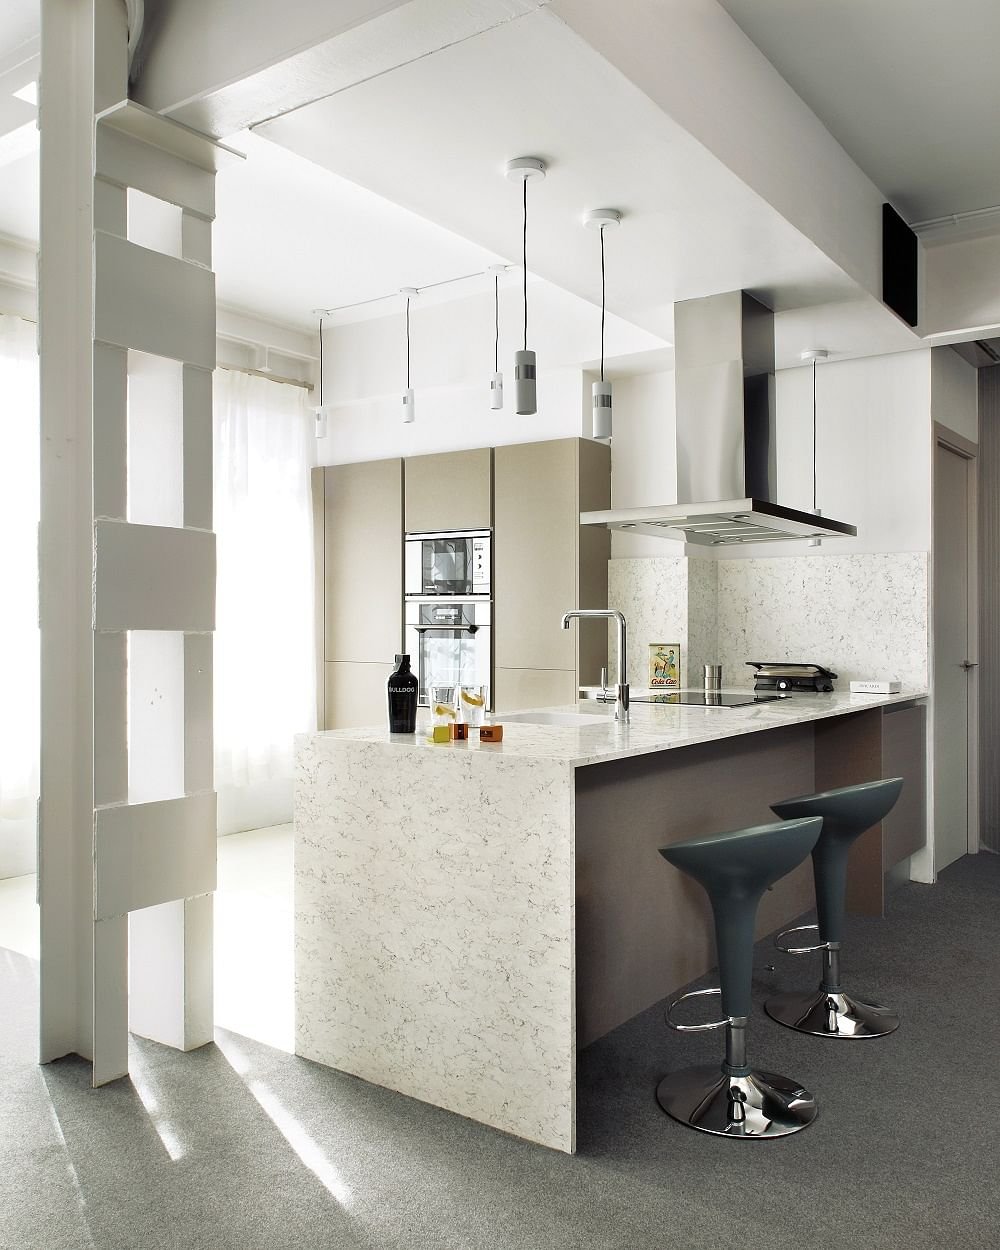 Renovation 4 Stone Surfacing Materials For Stylish Design Features At Home